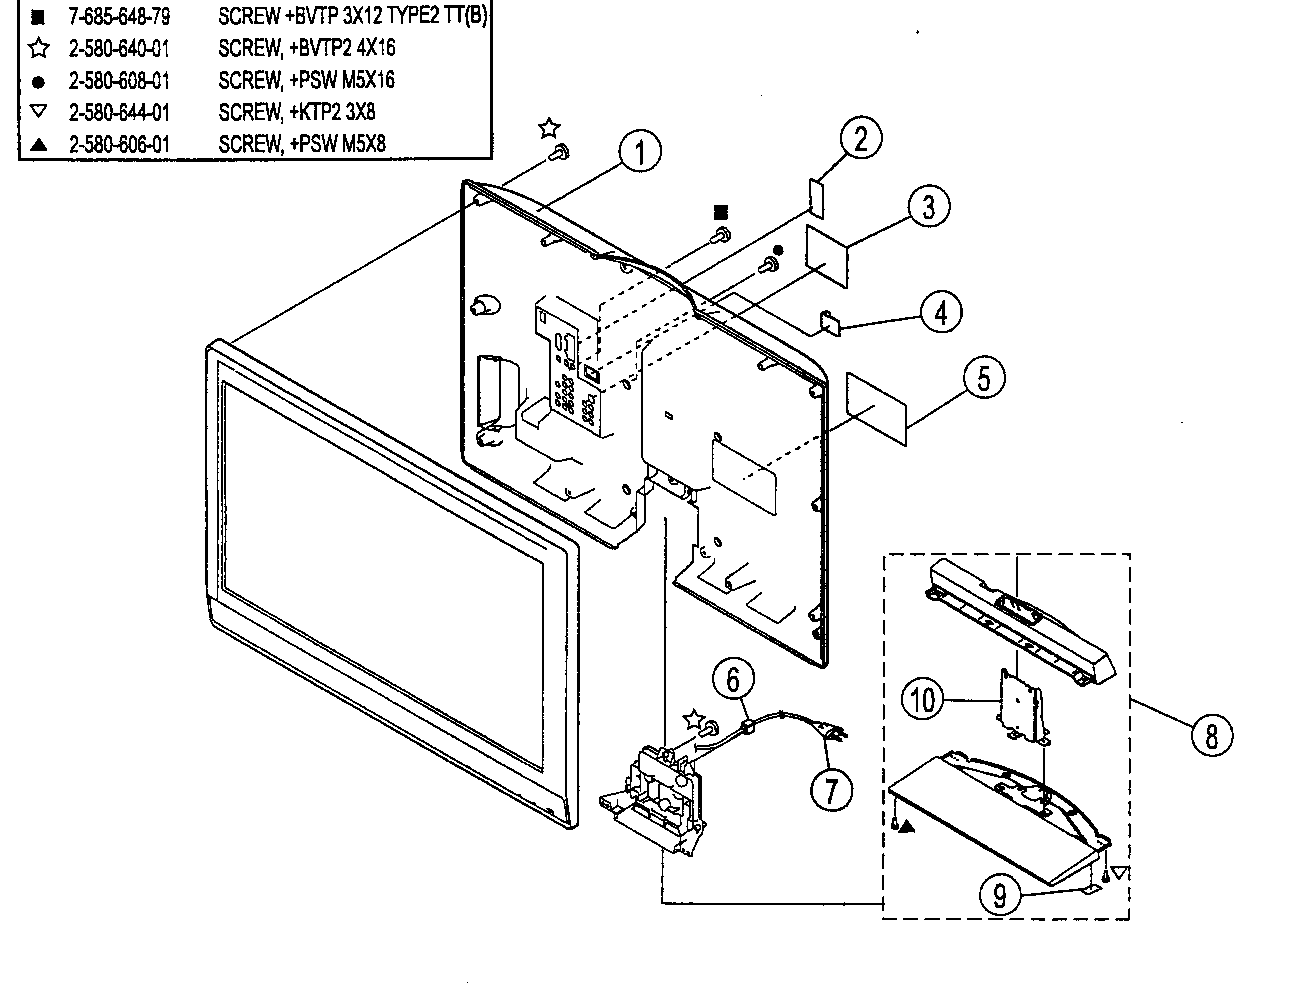 Sony KDL-32M3000 rear cover/stand assy diagram